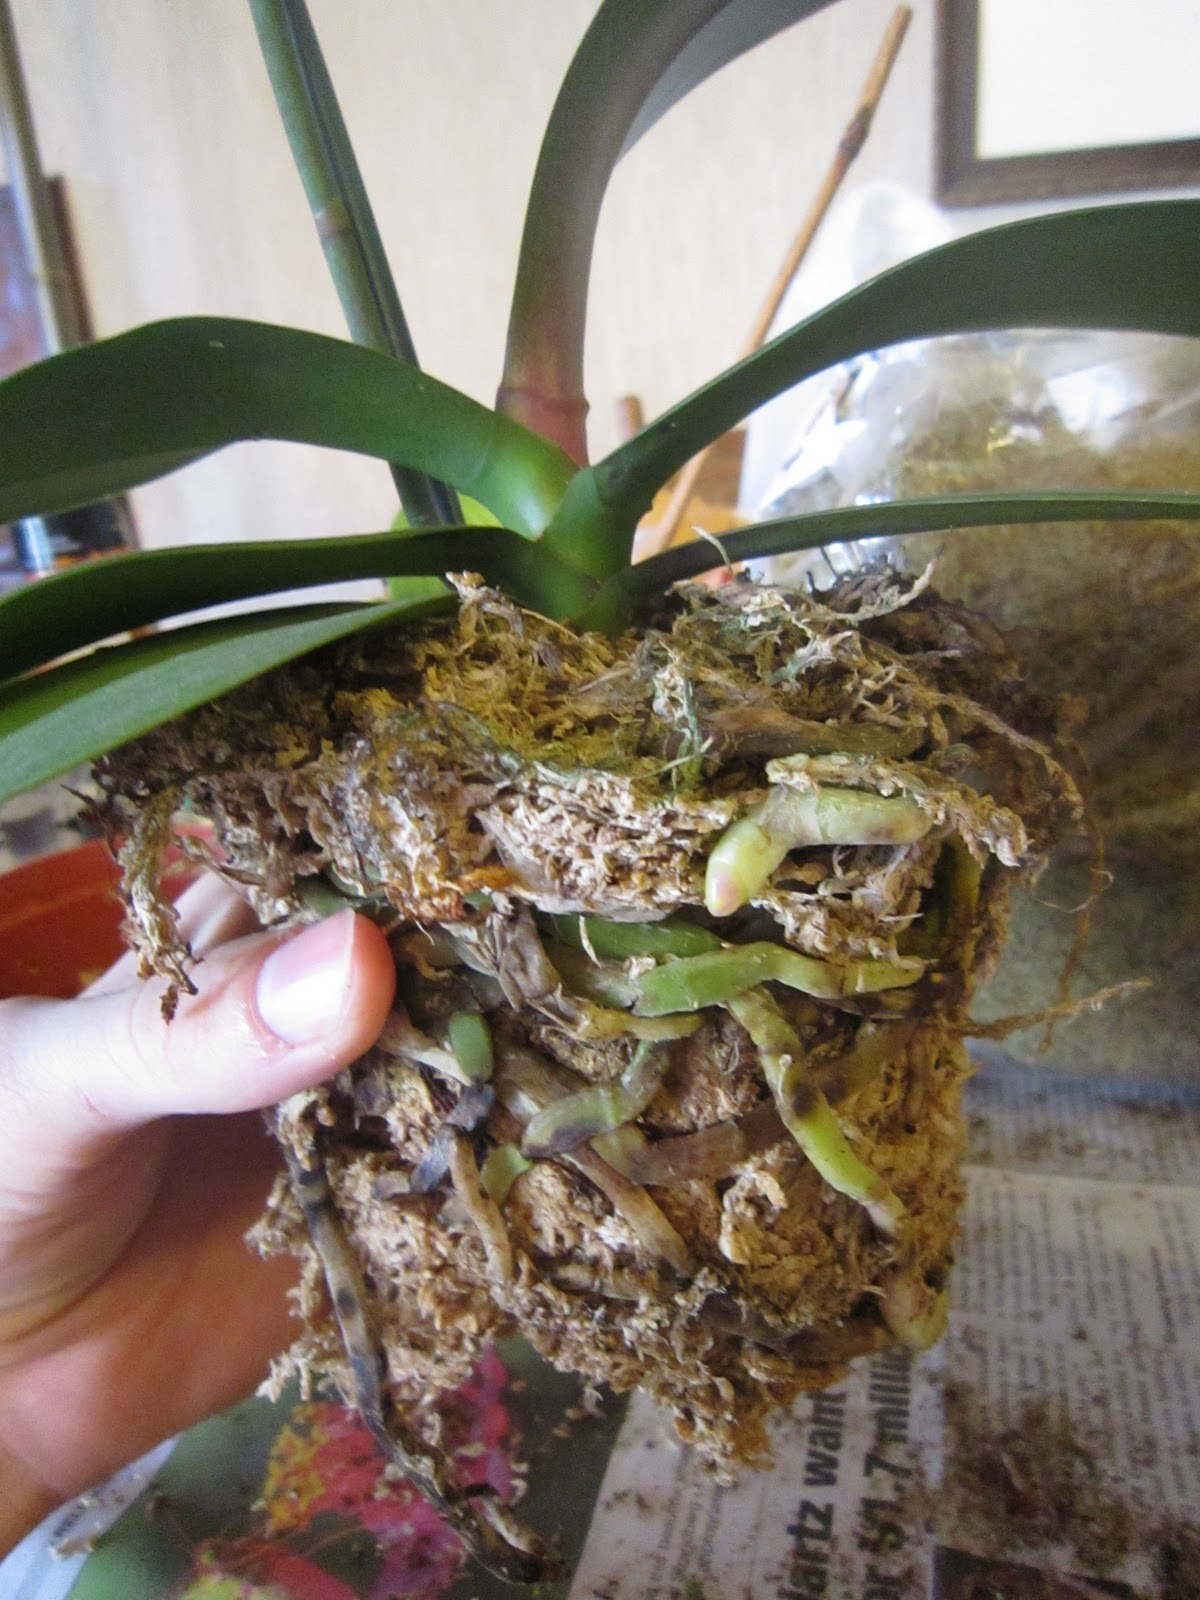 Chuck Does Art: Re-potting Phalaenopsis Orchids In